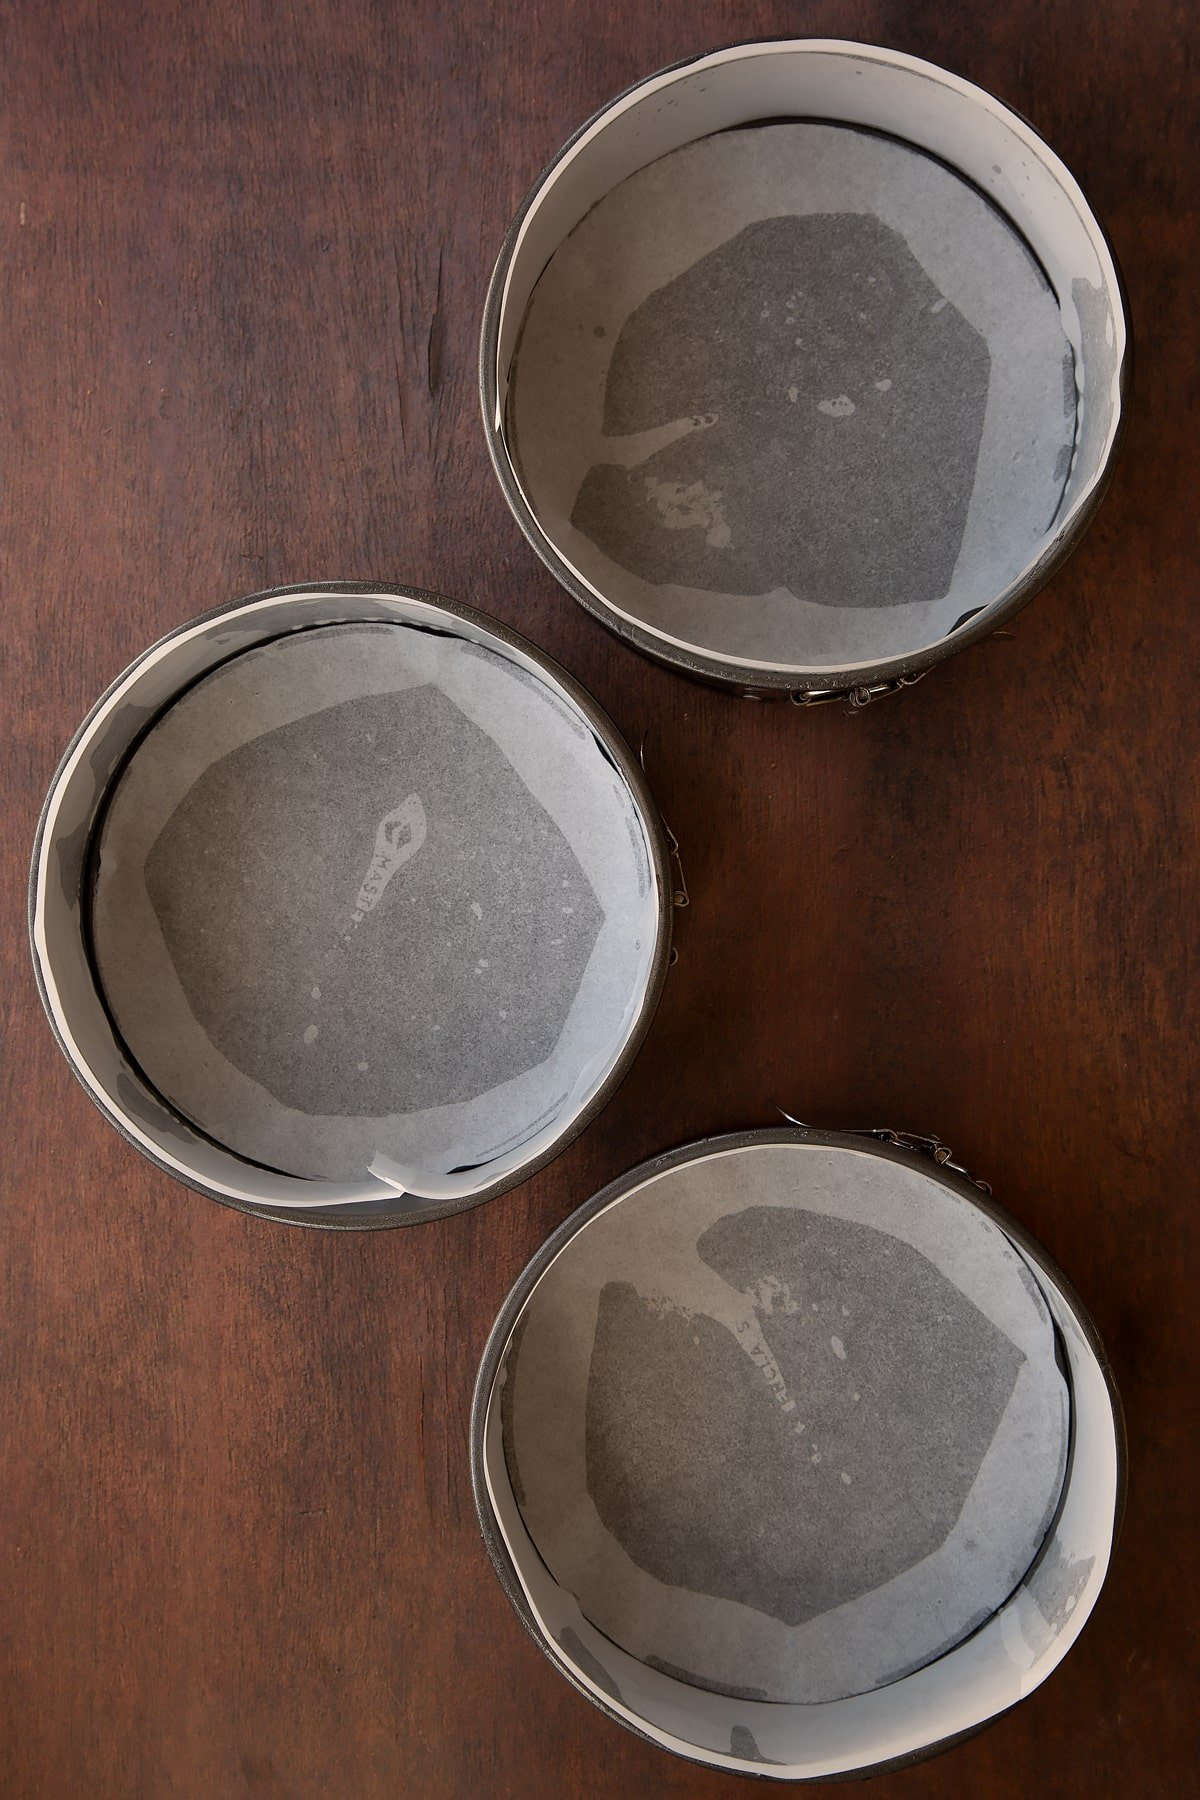 Three lined cake tins on a dark wooden surface.